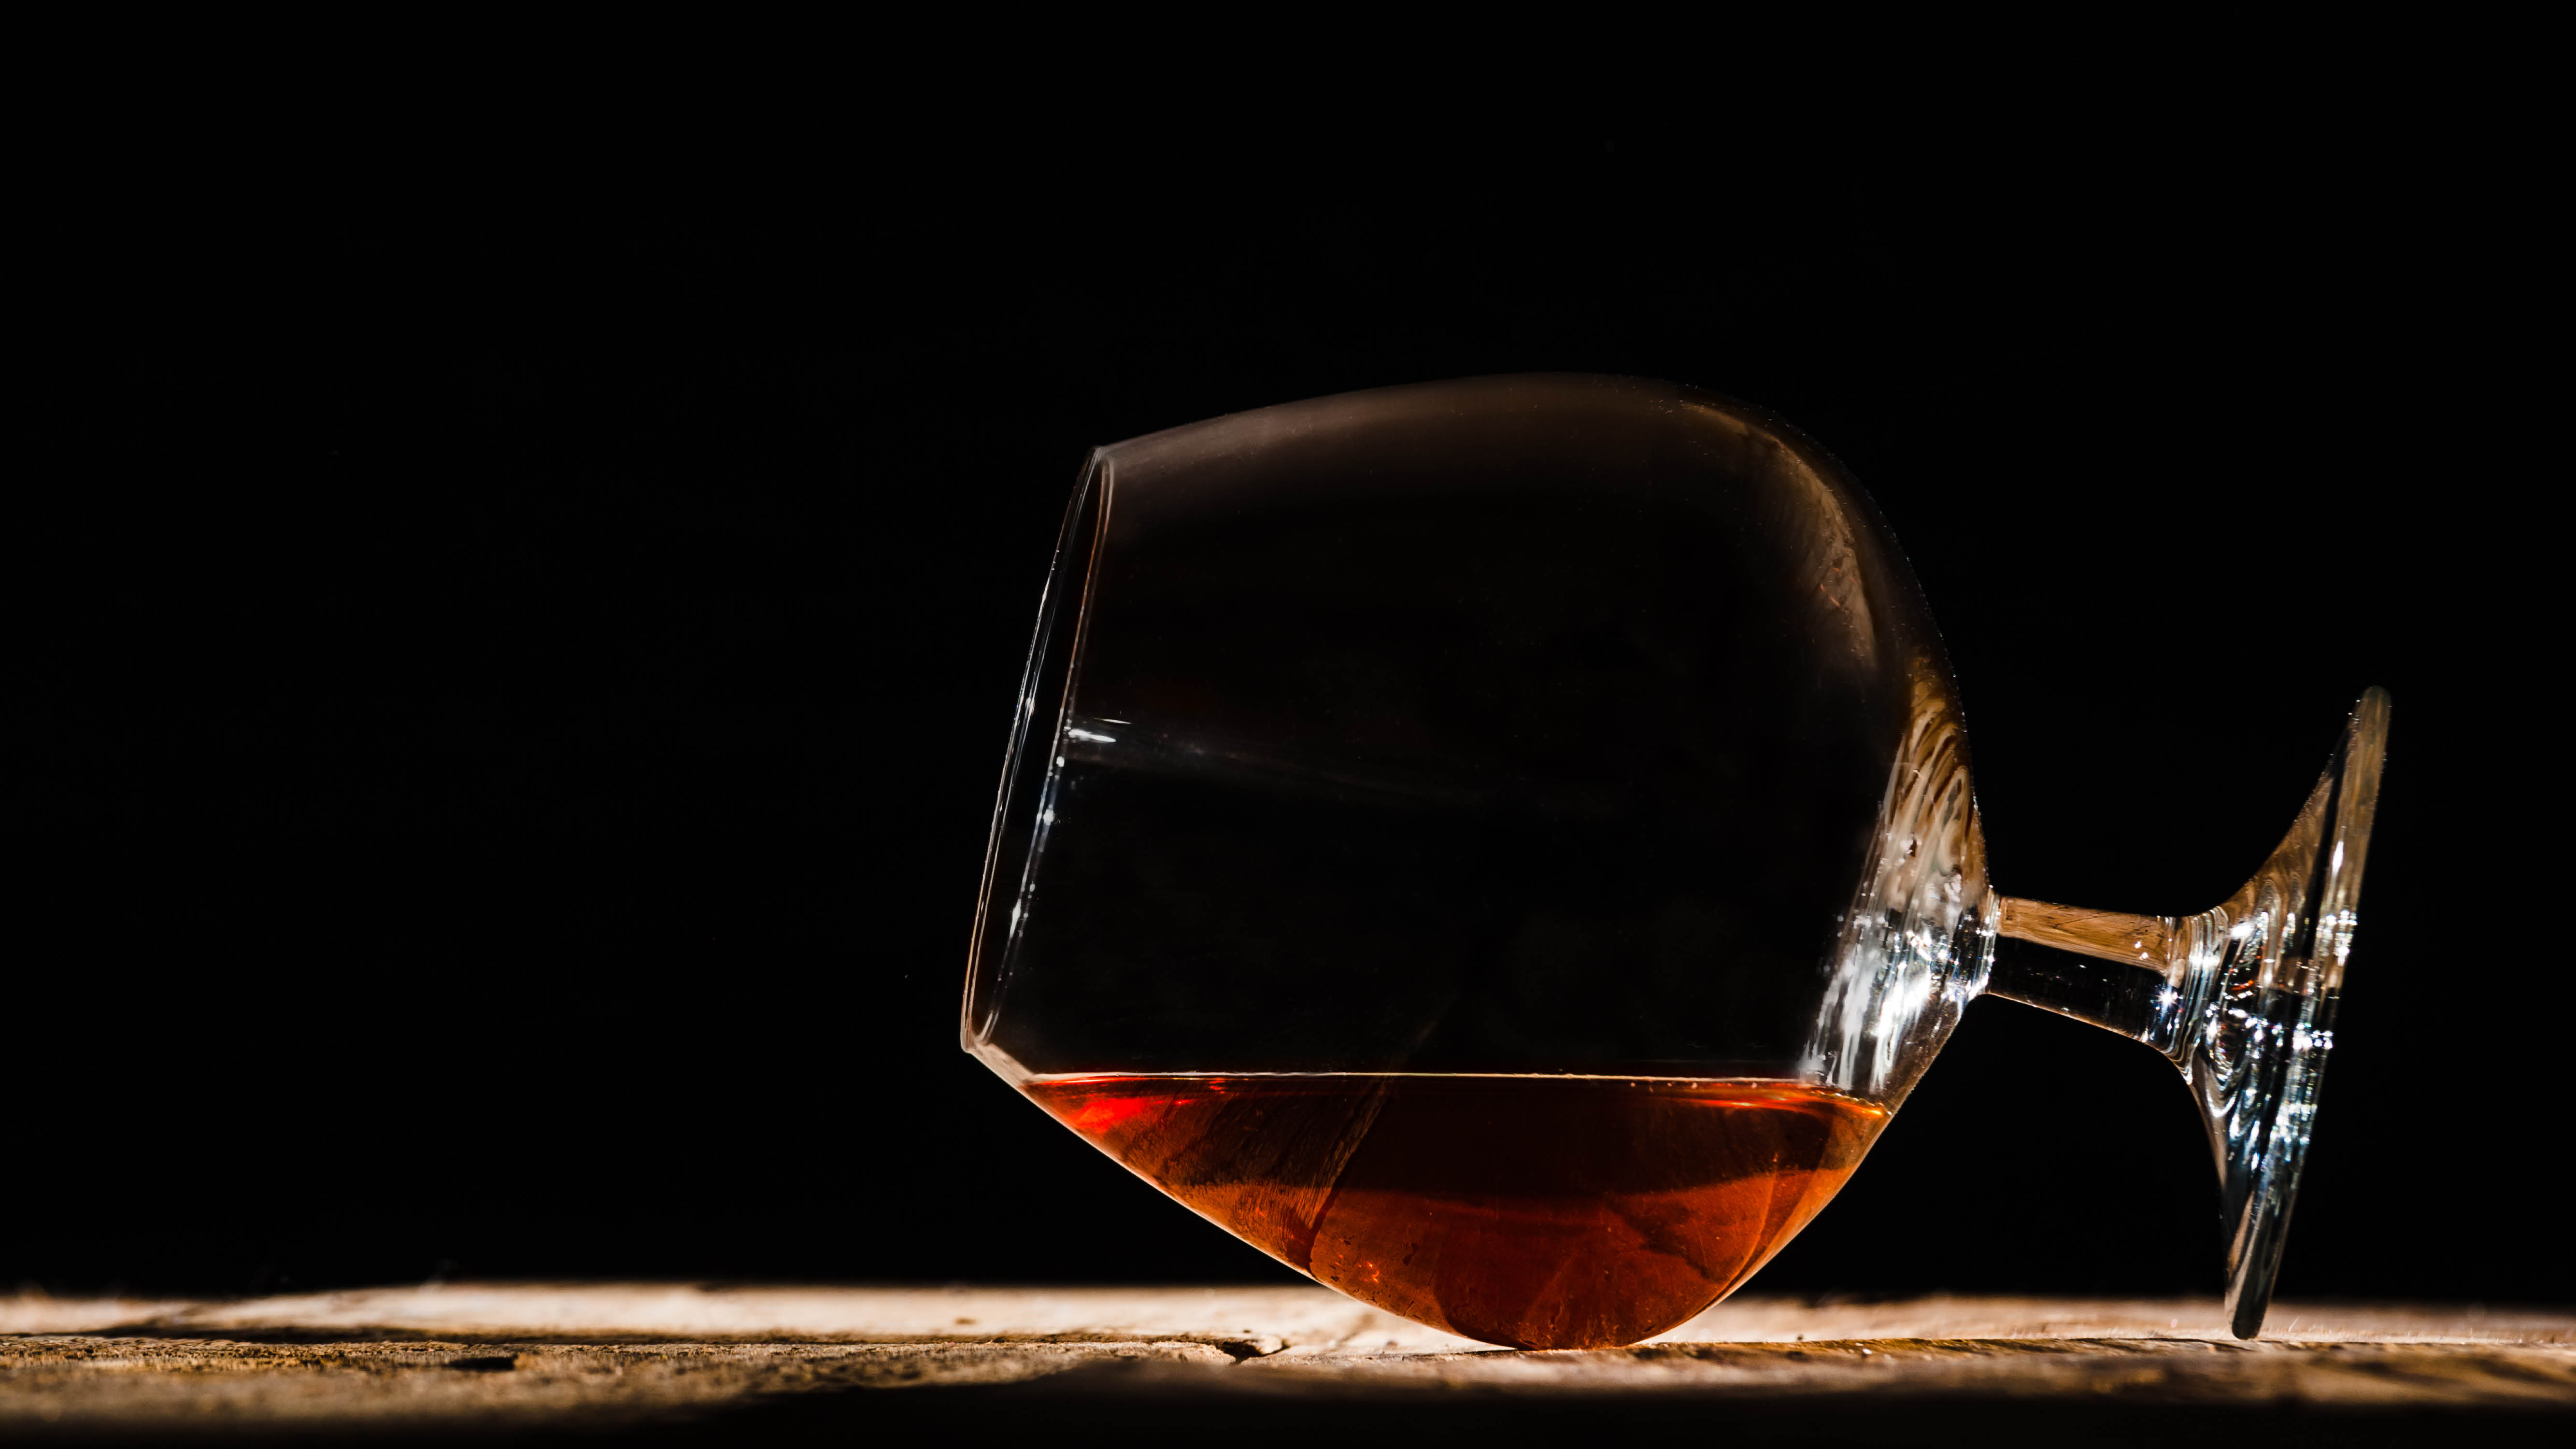 cognac-glass-laying-on-side.jpg